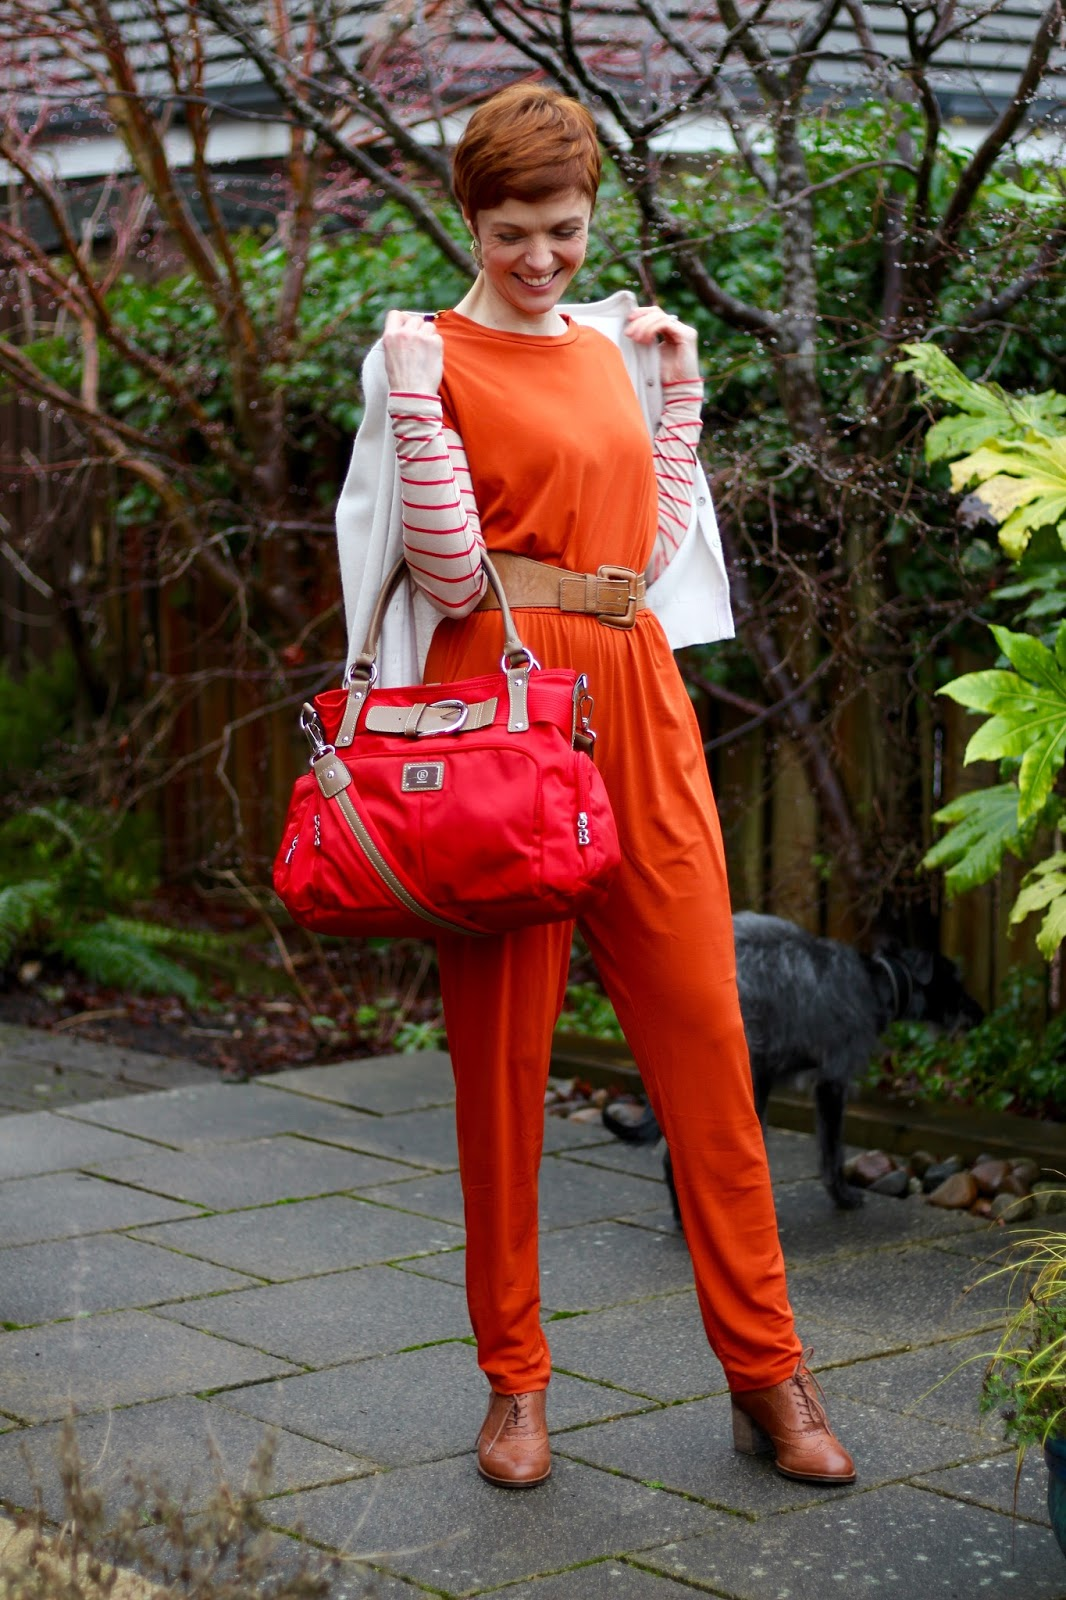 Fake Fabulous | Orange jumpsuit...so wrong it's right!